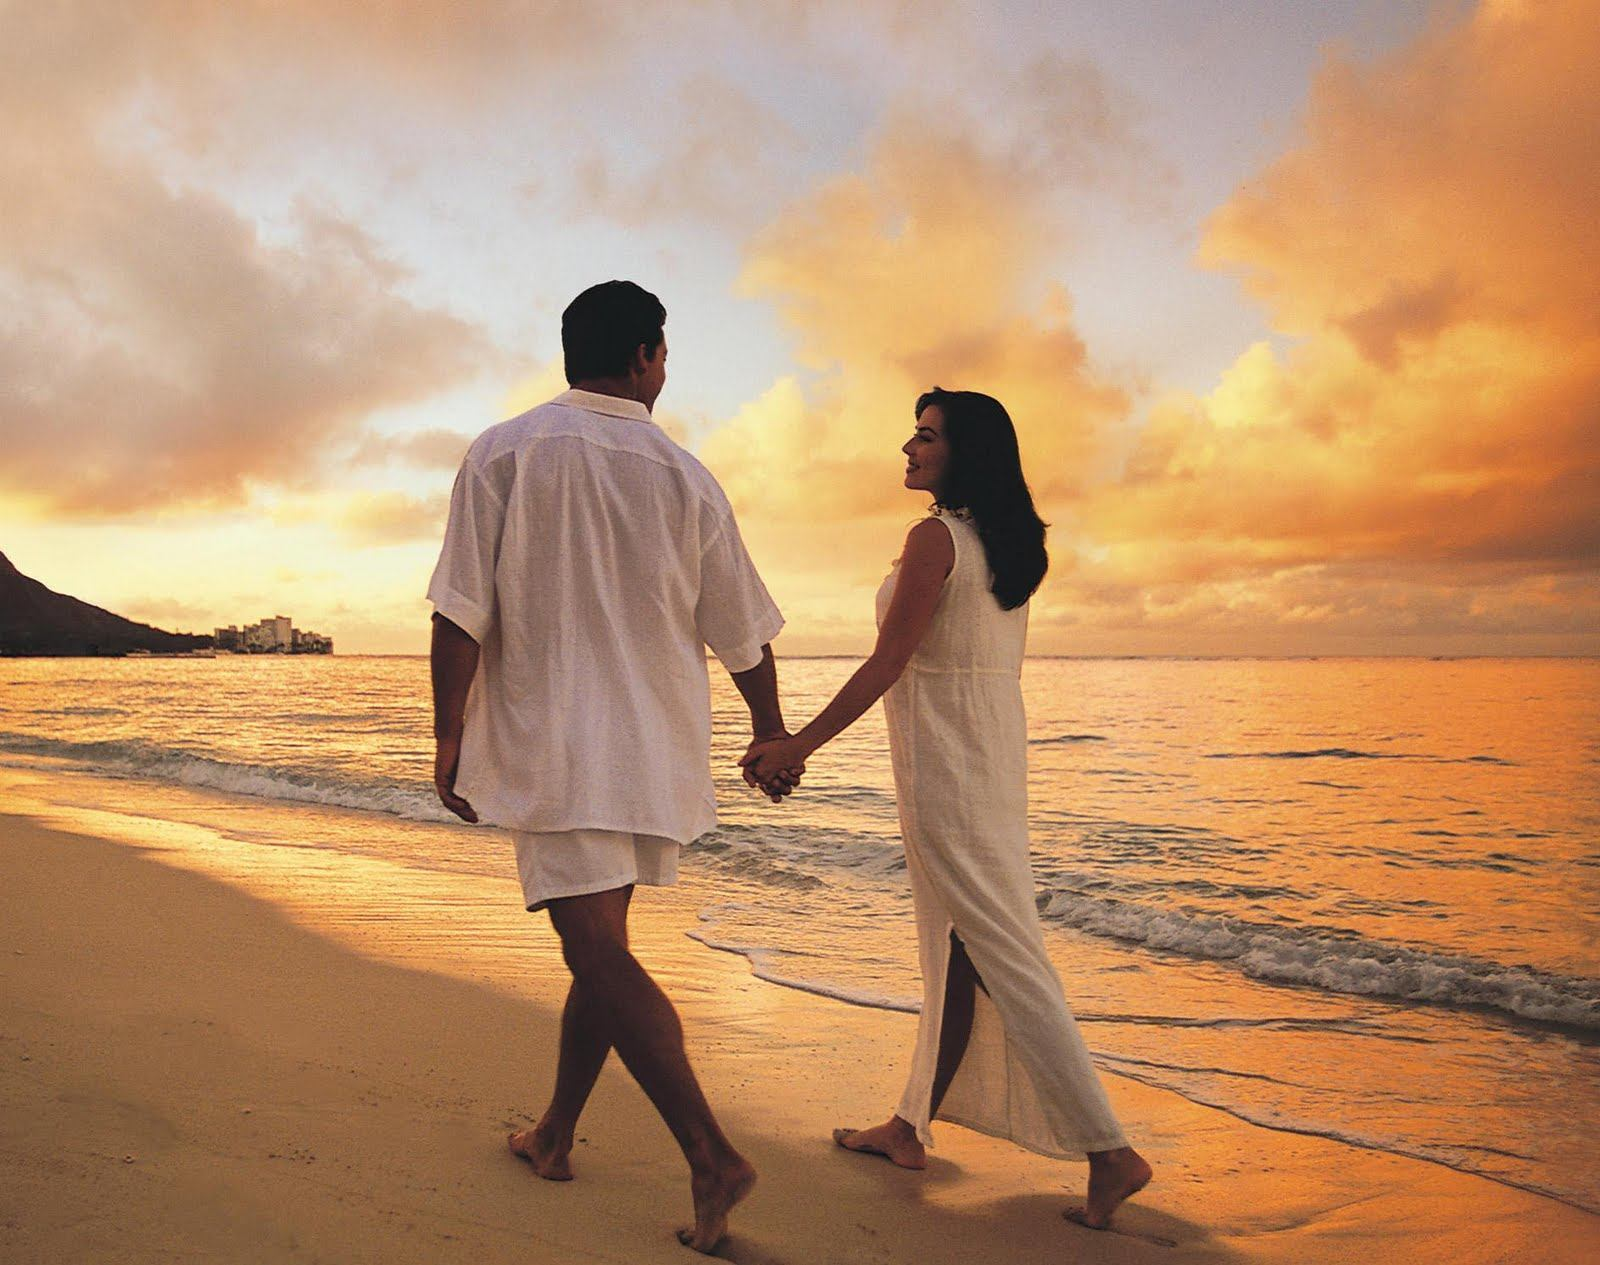 love-beach-couple-hd-wallpapers-fullscreen-top-images